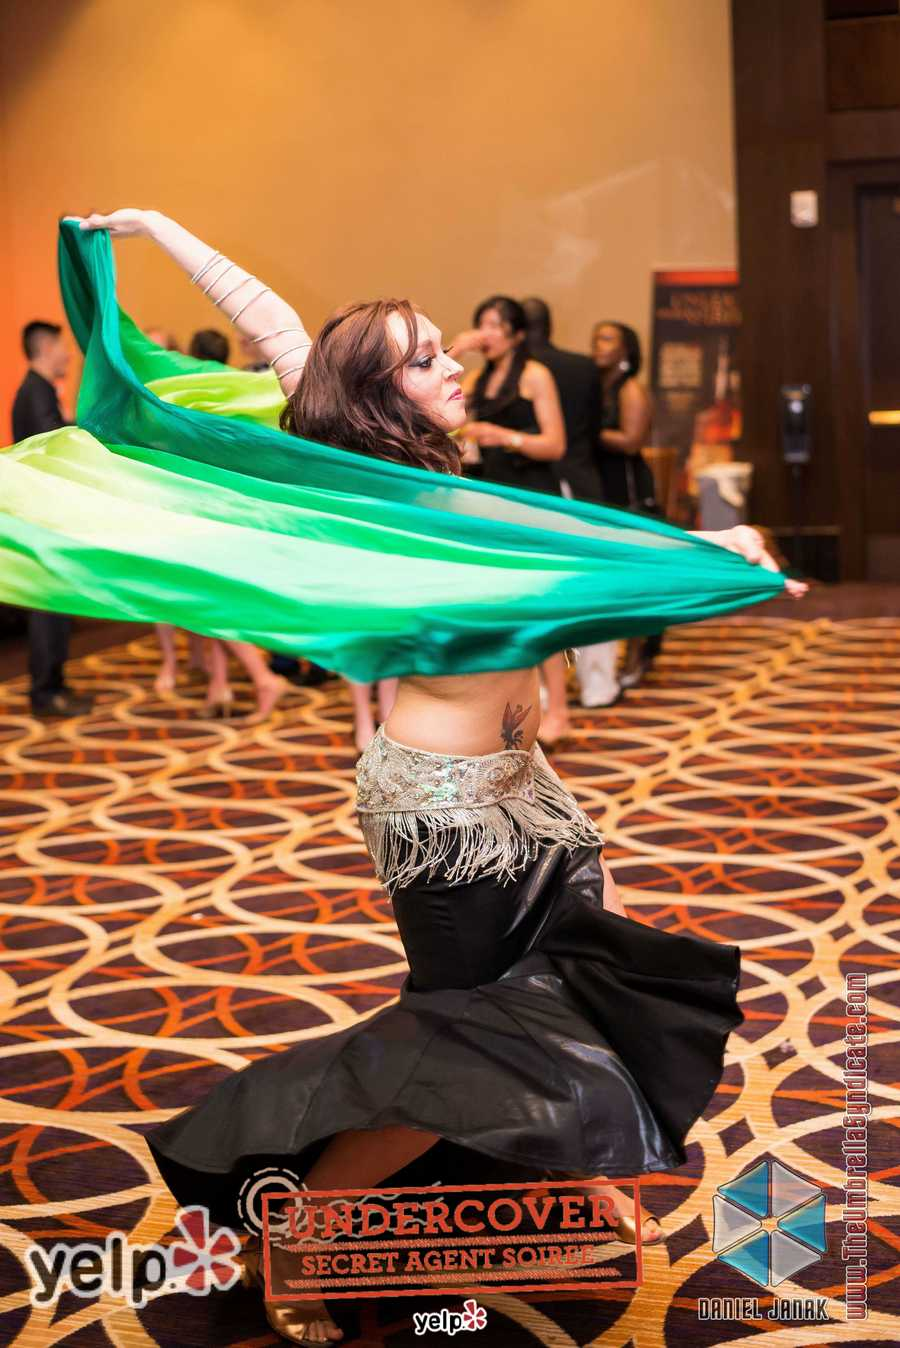 """Yelp UNDERCOVER: Secret Agent Soirée at Horseshoe Casino"" - Cazbar brought the goods and the moves, thanks to a striking belly-dancer"